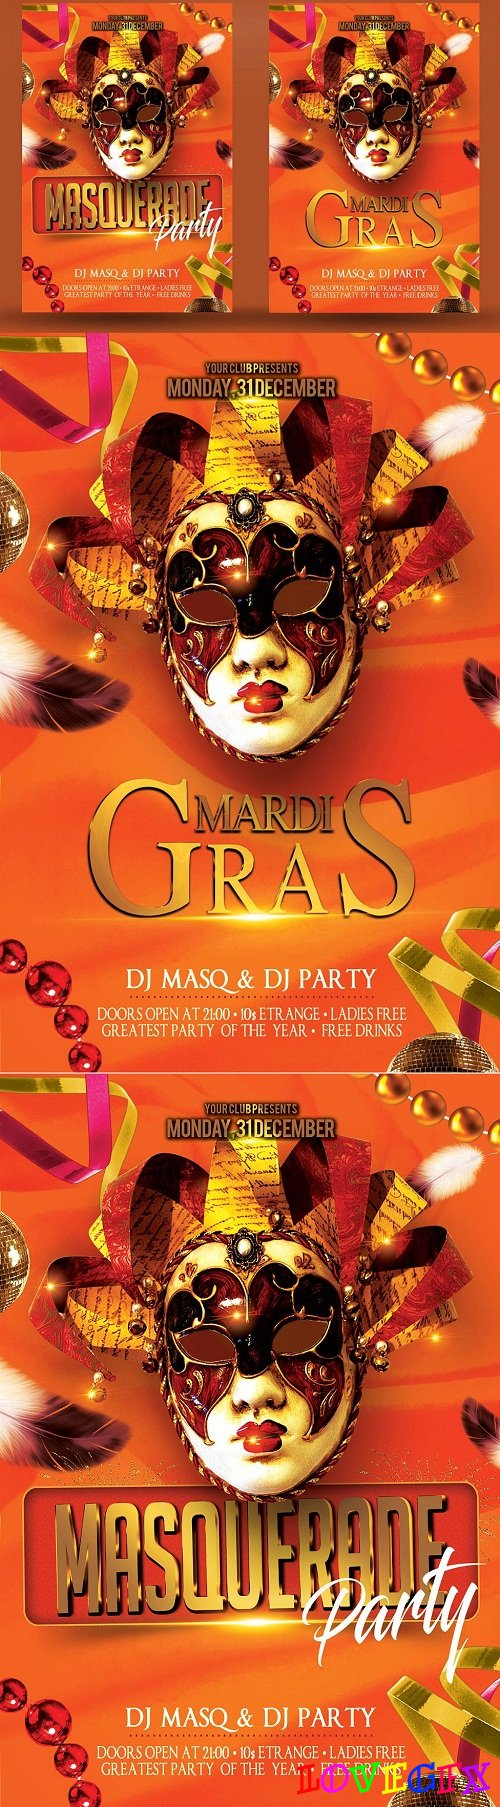 Masquerade Mardi Gras Party Flyer 3375517